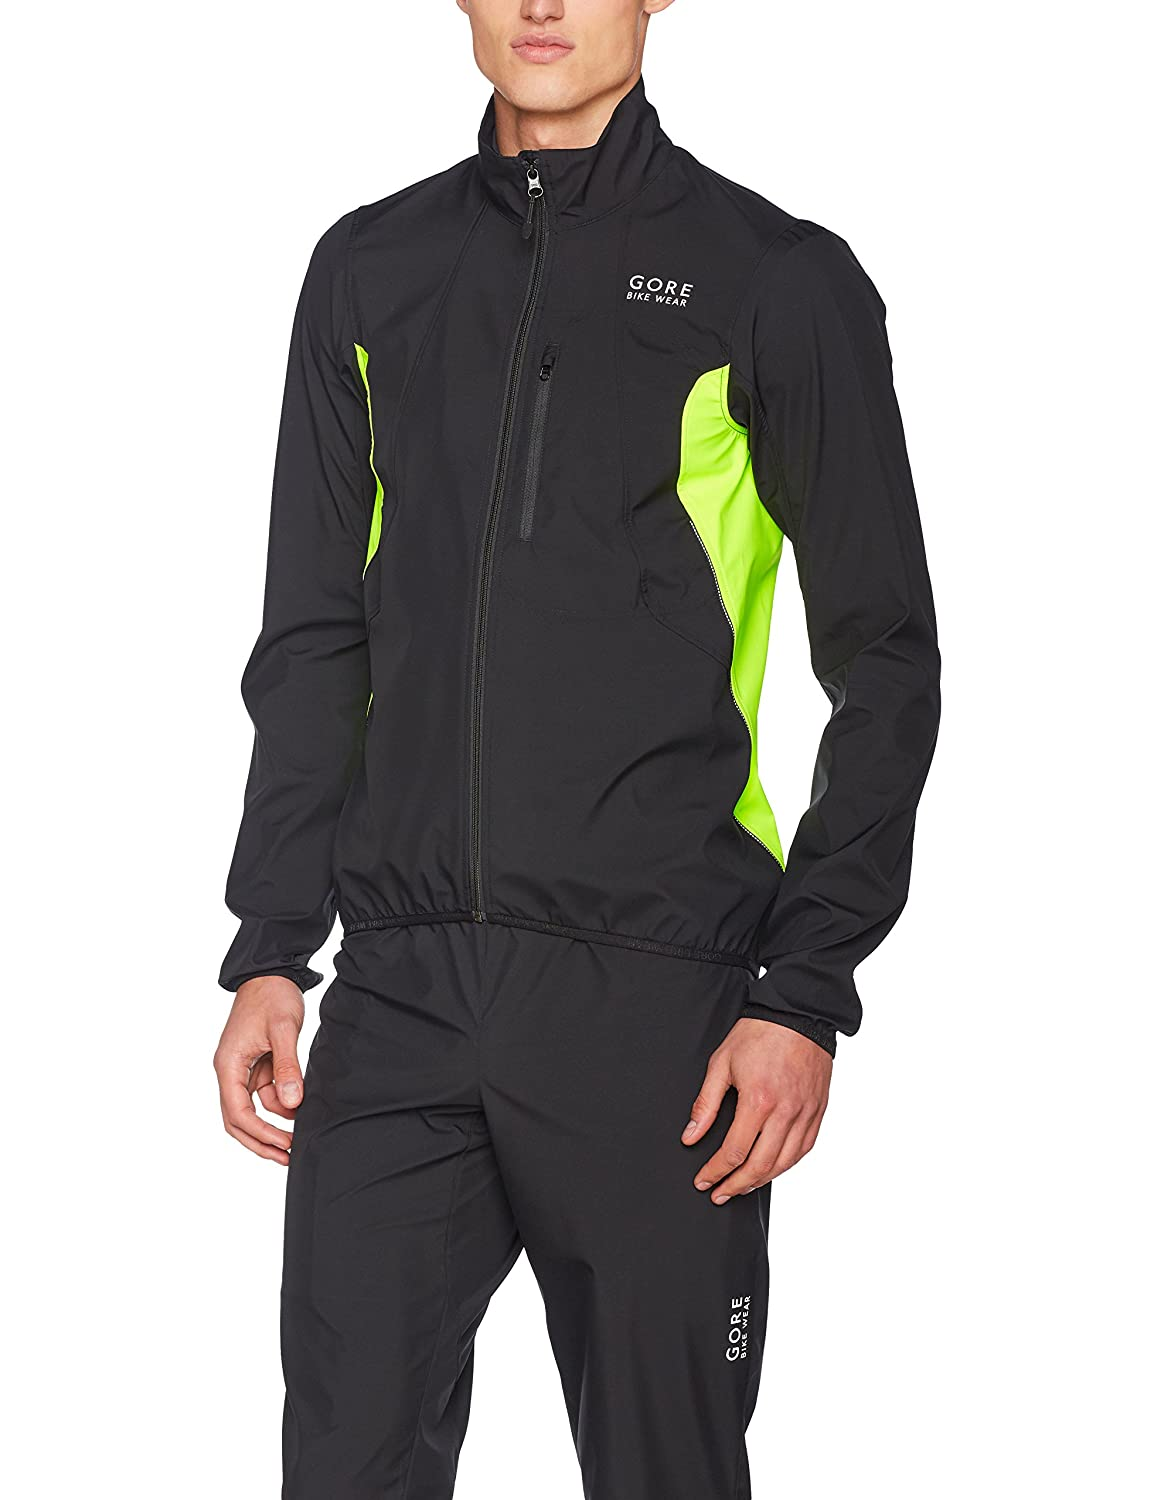 Gore Bike Wear , Giacca Uomo, Multicolore (Nero/Giallo Neon), L Gore Running Wear JWELMM